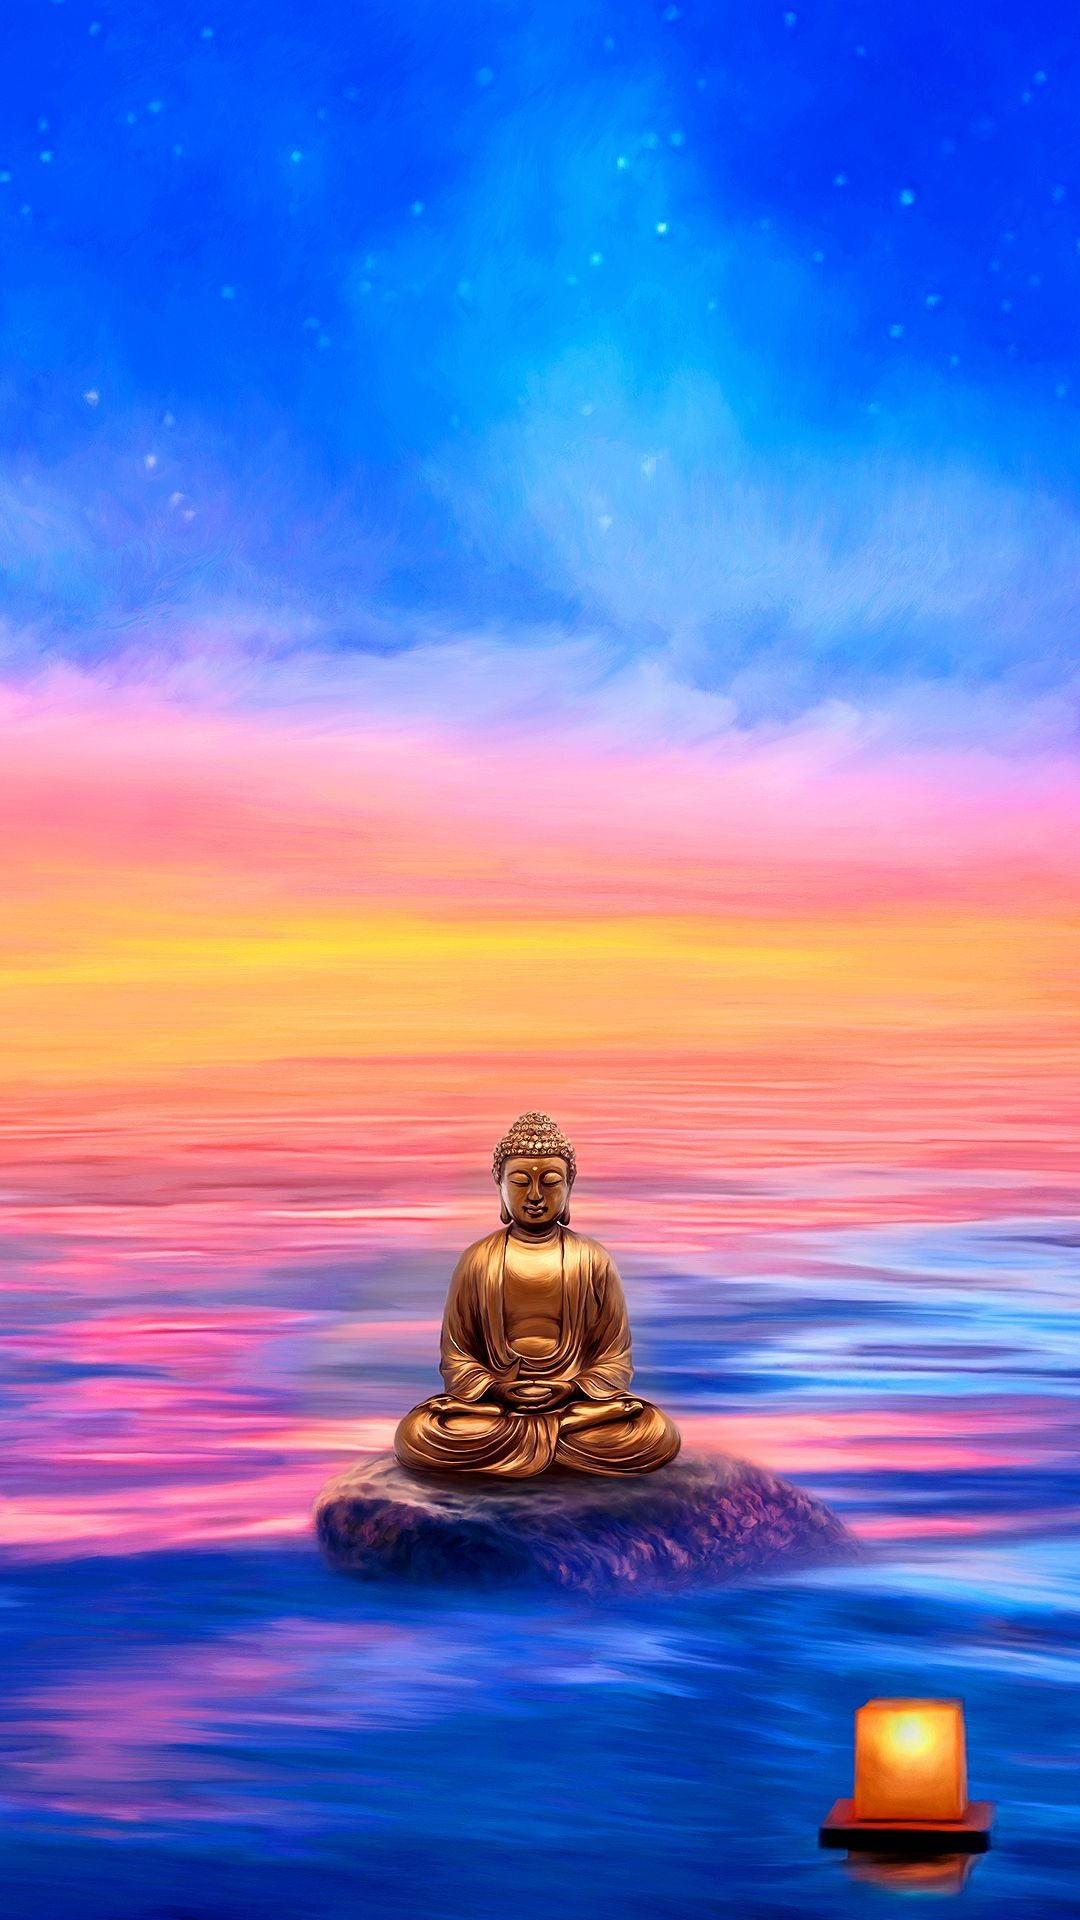 Res: 1080x1920, Buddha Wallpaper for Mobile Devices – Artwork by GoodVibesGallery.com